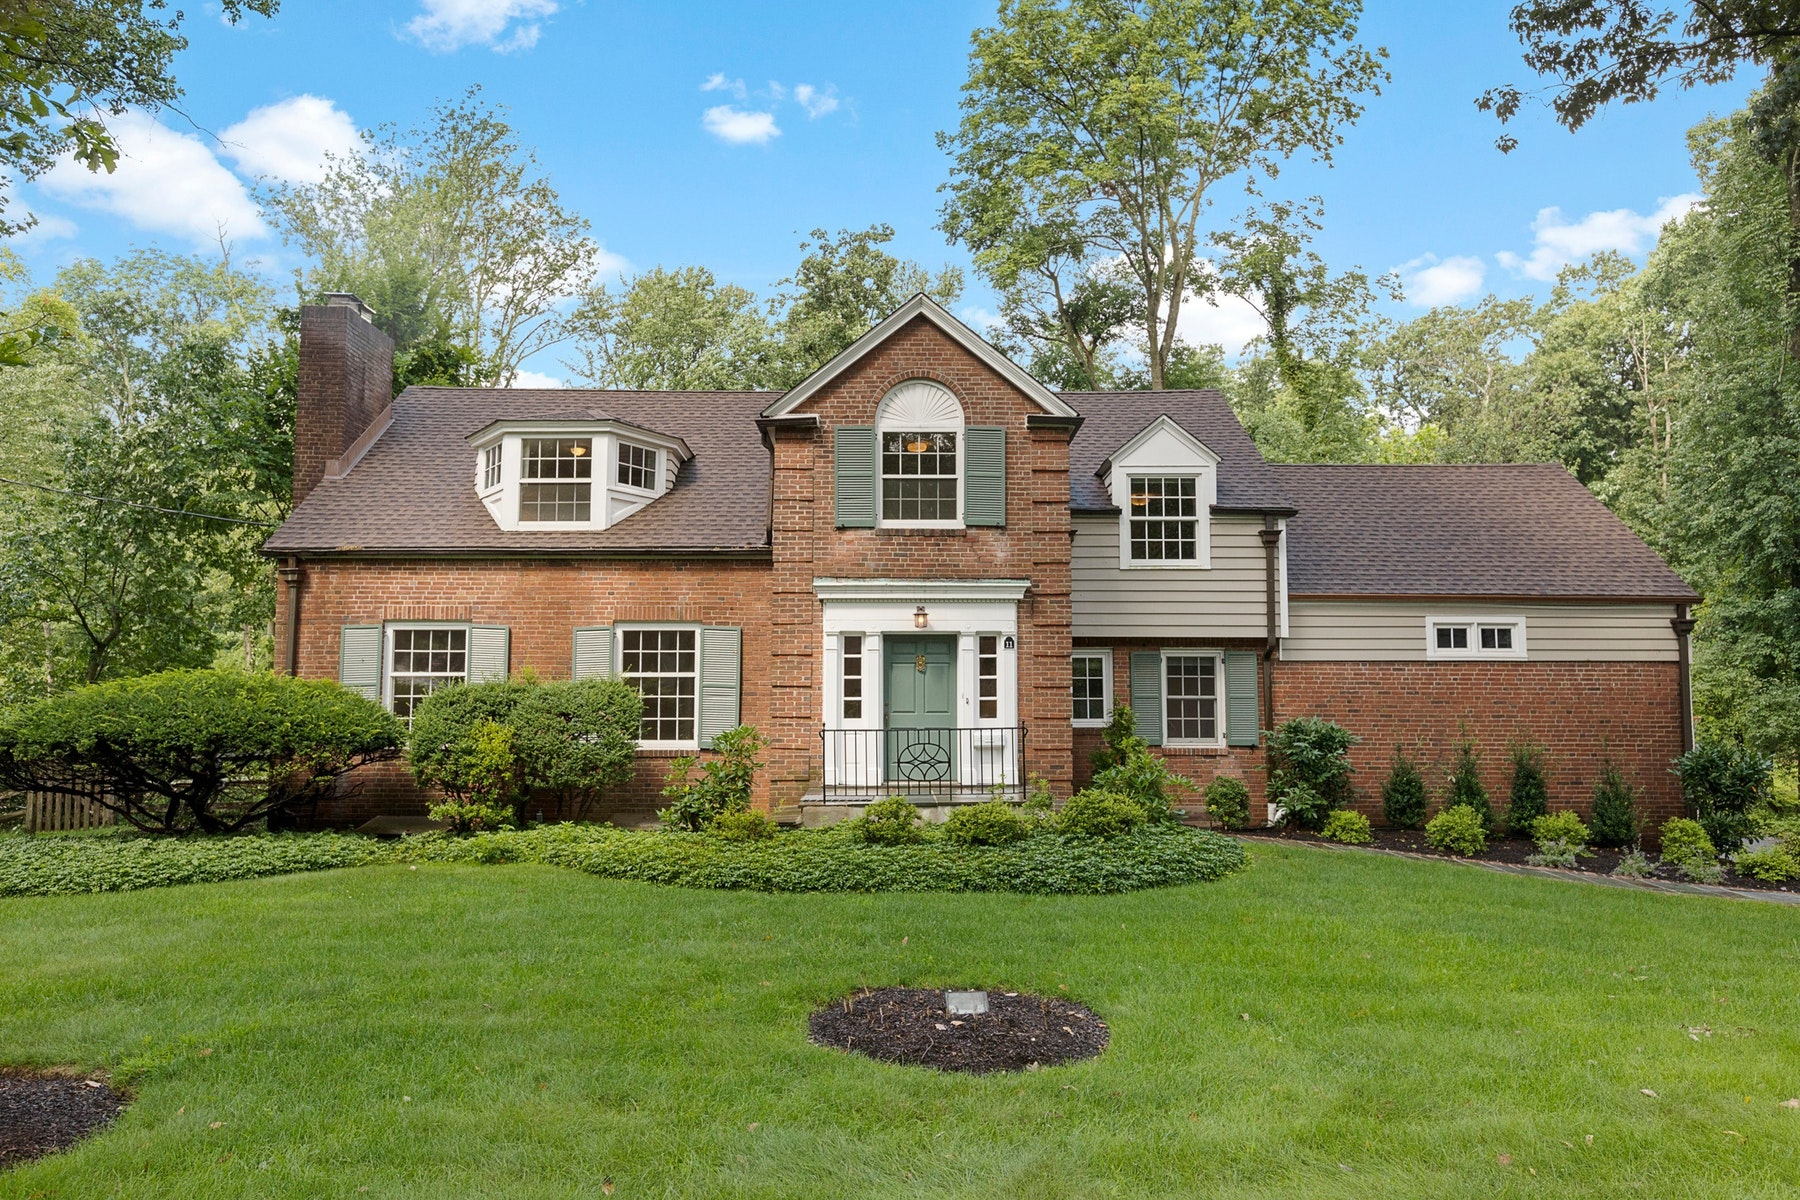 Single Family Home for Sale at Classic Essex Fells Center Hall Colonial 11 Oldchester Road, Essex Fells, New Jersey 07021 United States